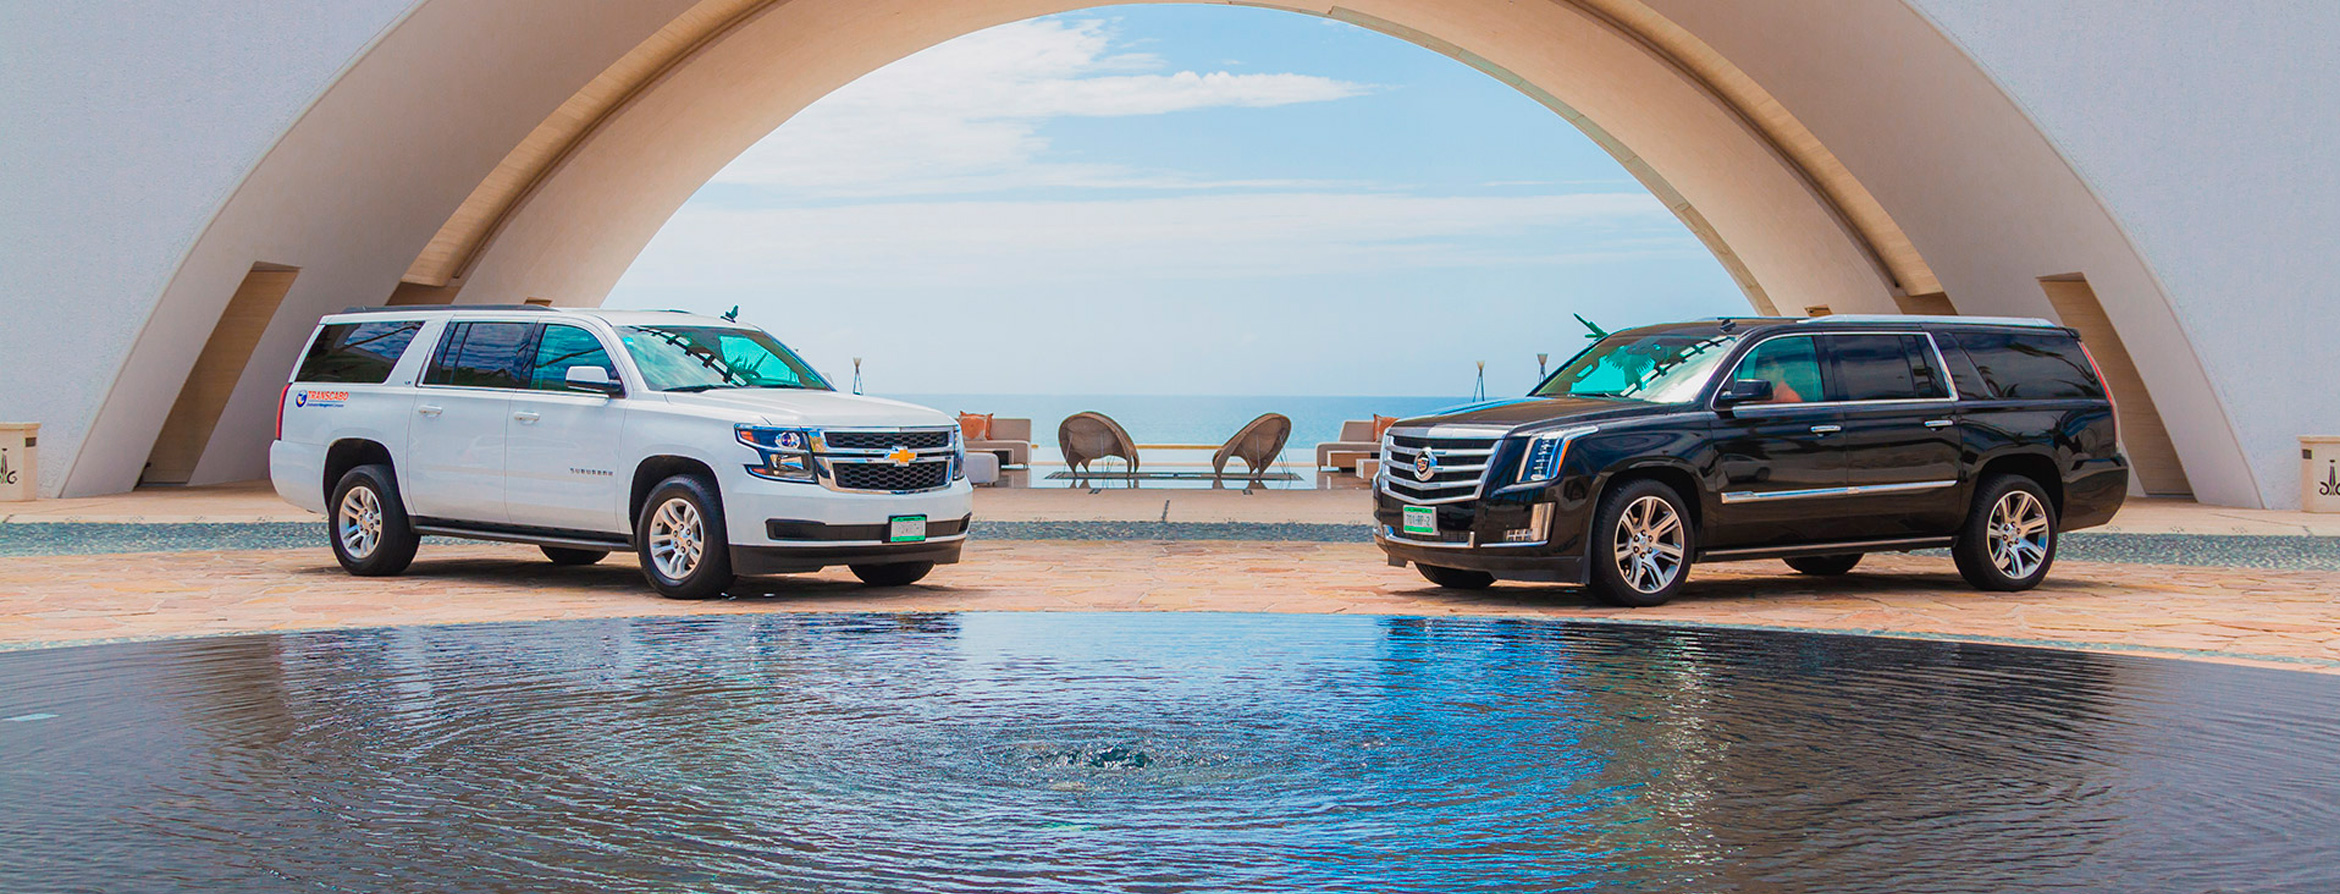 Cabo airport transportation SJD airport | Private and